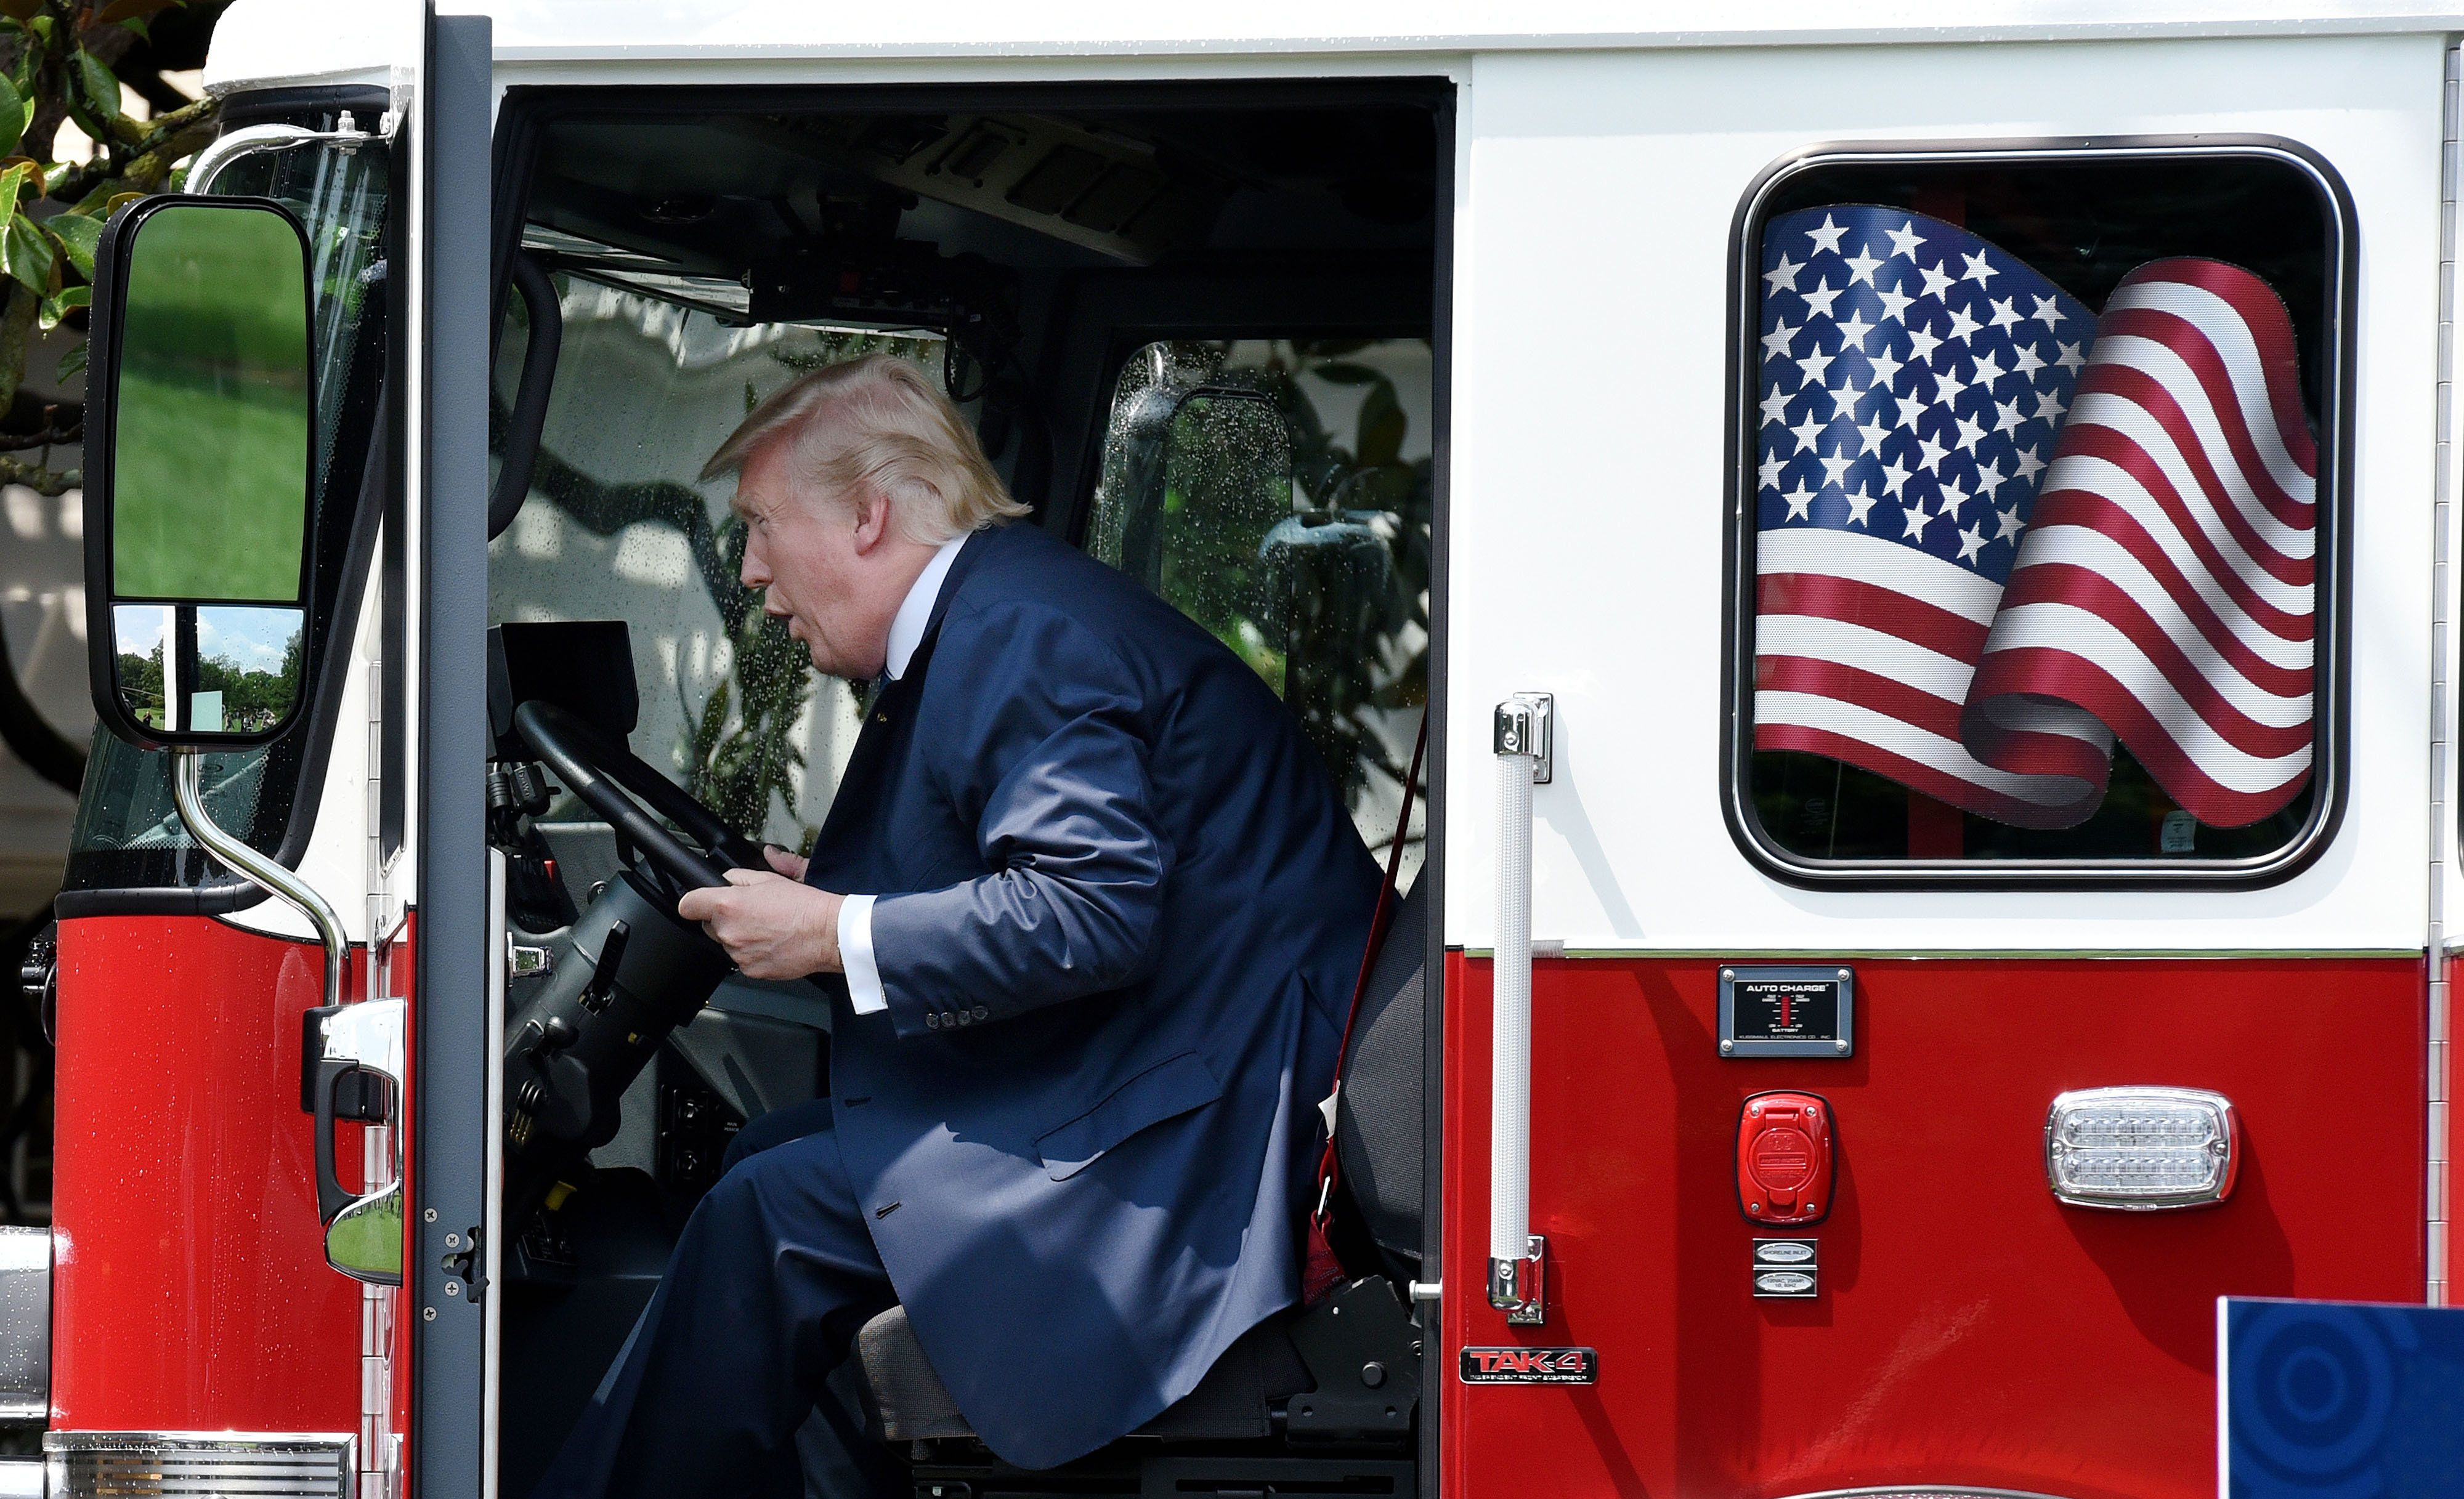 Trump Plays In A Fire Truck And The Photos Don't